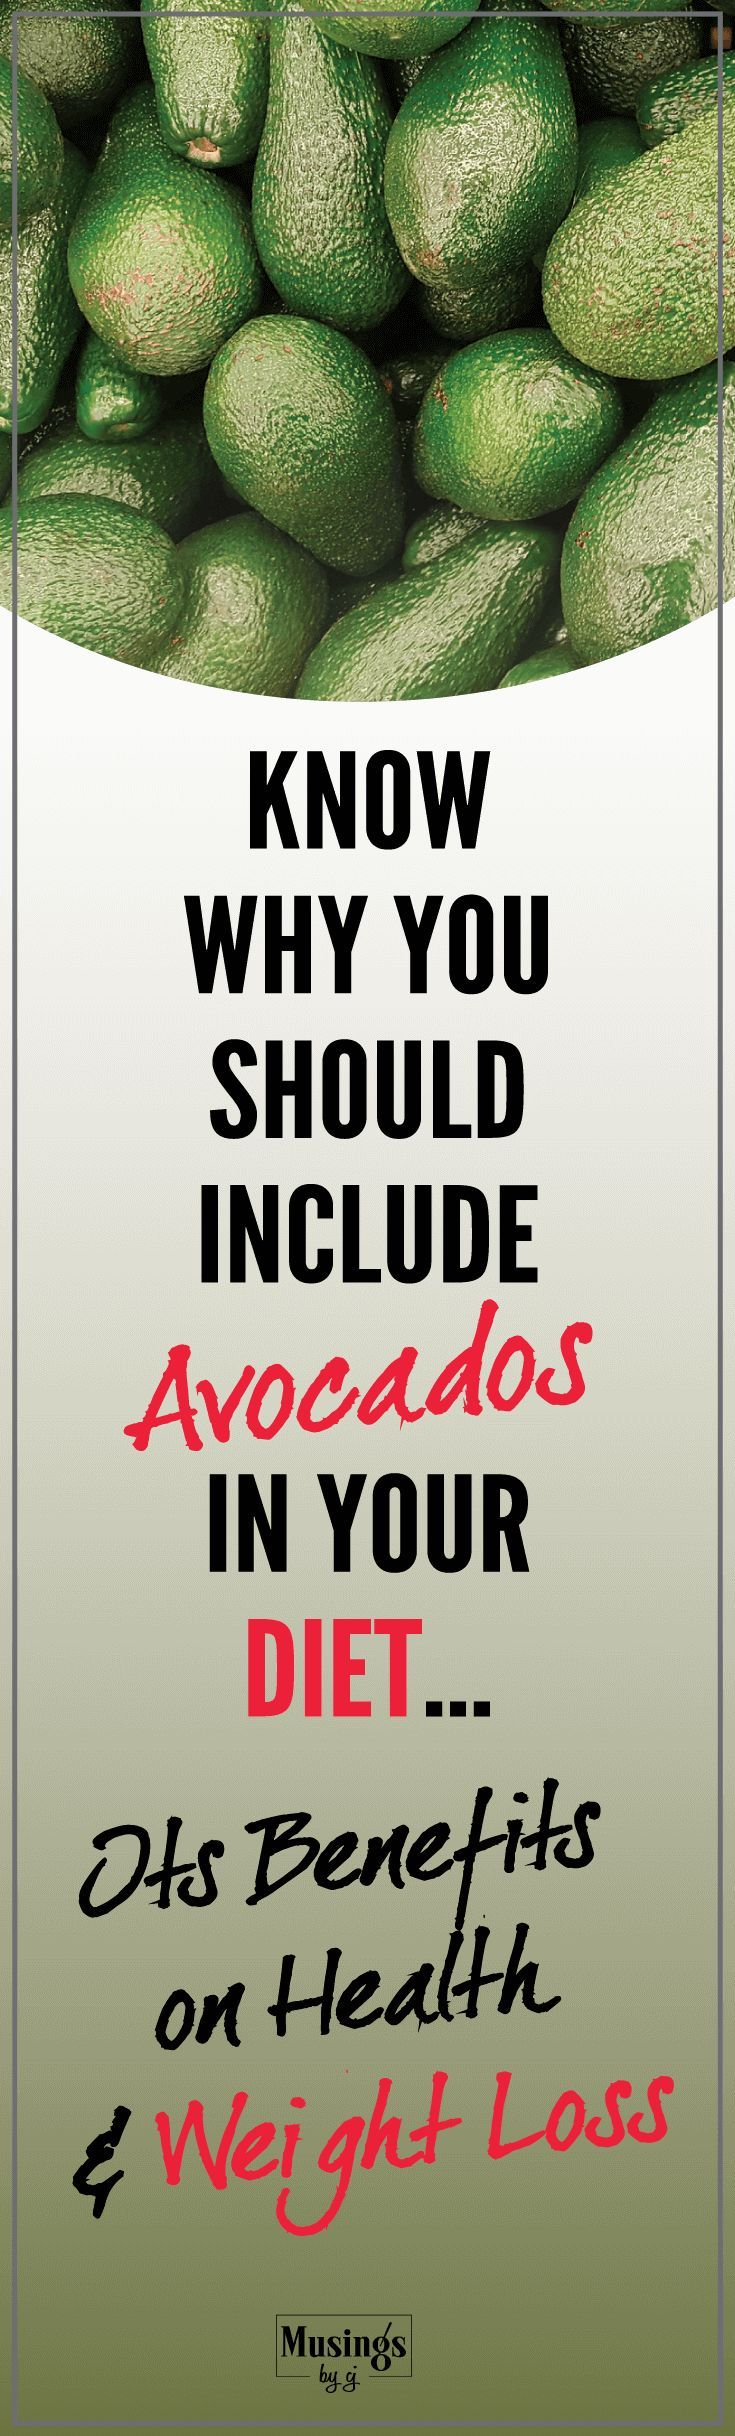 Know all about Avocados, its health benefits, its role in weight loss, Answers to all the questions you would want to know to include Avocados in your diet. A Nutrient Rich Fruit. Decrease the risk of obesity, diabetes, arthritis and heart disease.